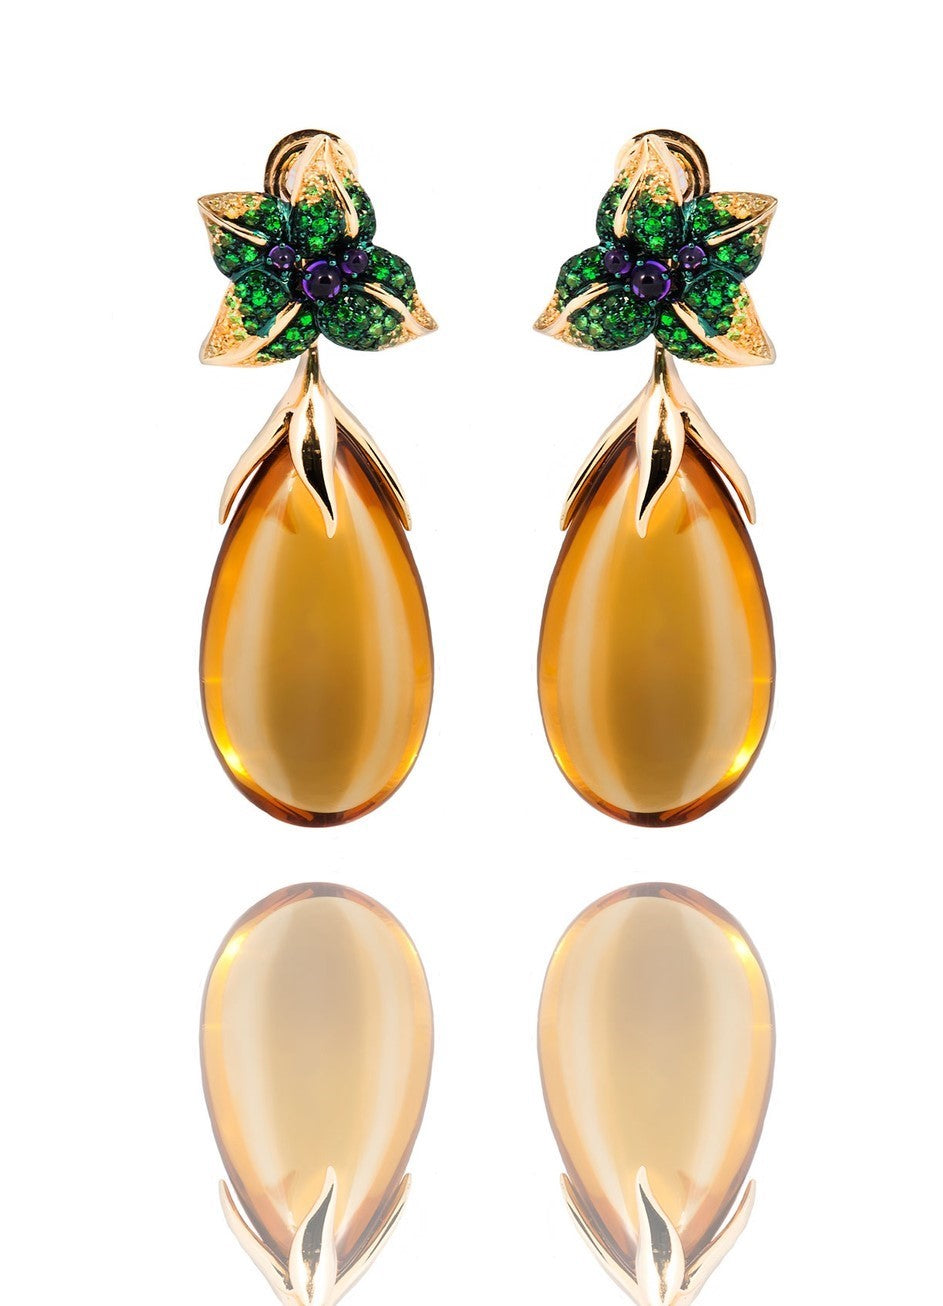 Iconic Emilia Earrings Honey Quartz Medium